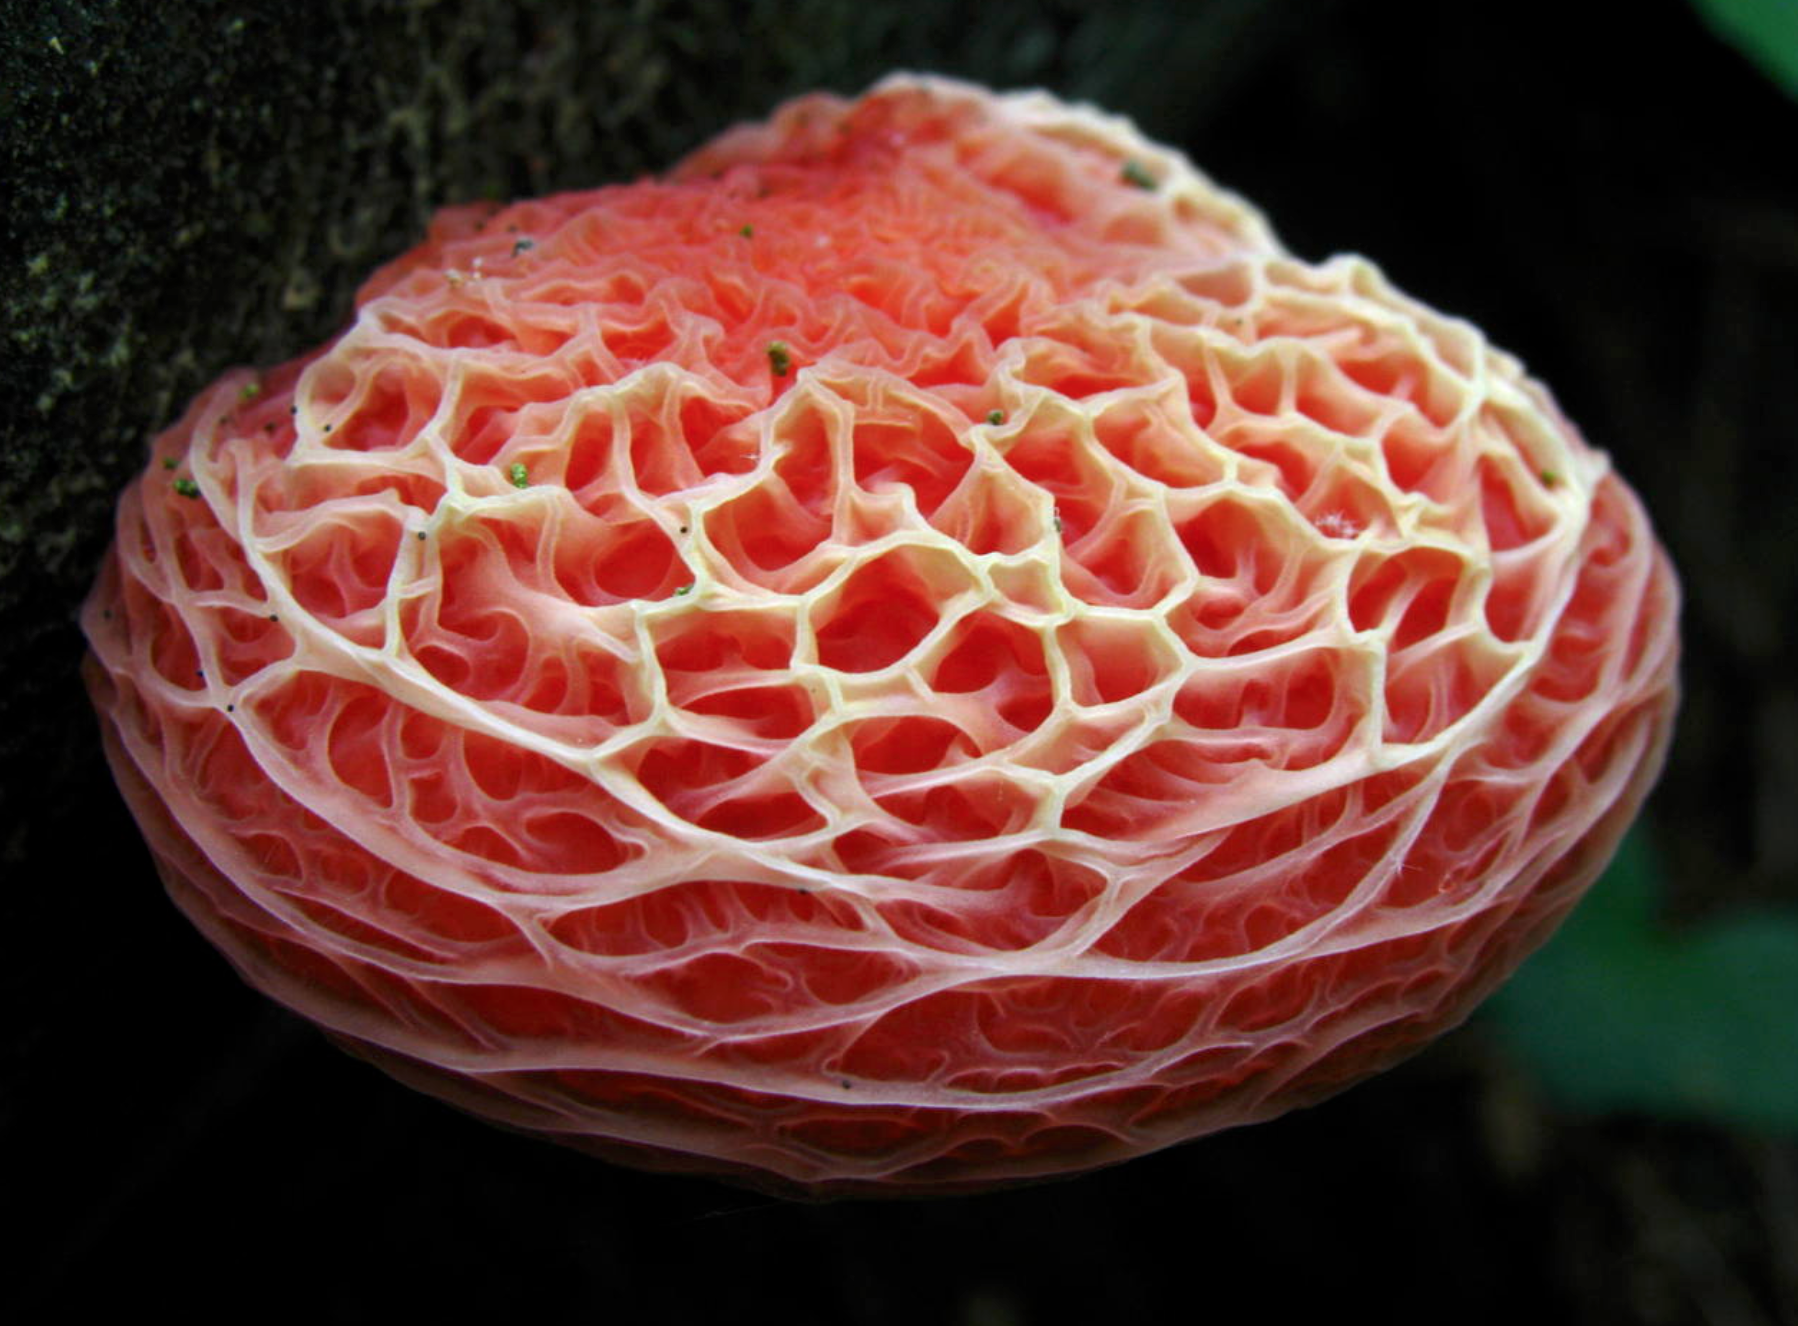 "Rhodotus palmatus , the wrinkled peach. By                         Normal     0                     false     false     false         EN-US     X-NONE     X-NONE                                                                                                                                                                                                                                                                                                                                                                                                                                                                                                                                                                                                                                                                                                                                                                                                                                                                                                                                                                                                                                                                                                                                                                                                                                                                                                                                                                                                                                                                                                                                                                                                                                                                                                     /* Style Definitions */  table.MsoNormalTable 	{mso-style-name:""Table Normal""; 	mso-tstyle-rowband-size:0; 	mso-tstyle-colband-size:0; 	mso-style-noshow:yes; 	mso-style-priority:99; 	mso-style-parent:""""; 	mso-padding-alt:0in 5.4pt 0in 5.4pt; 	mso-para-margin:0in; 	mso-para-margin-bottom:.0001pt; 	mso-pagination:widow-orphan; 	font-size:12.0pt; 	font-family:""Calibri"",sans-serif; 	mso-ascii-font-family:Calibri; 	mso-ascii-theme-font:minor-latin; 	mso-hansi-font-family:Calibri; 	mso-hansi-theme-font:minor-latin; 	mso-bidi-font-family:""Times New Roman""; 	mso-bidi-theme-font:minor-bidi;}      Dan Molter ."